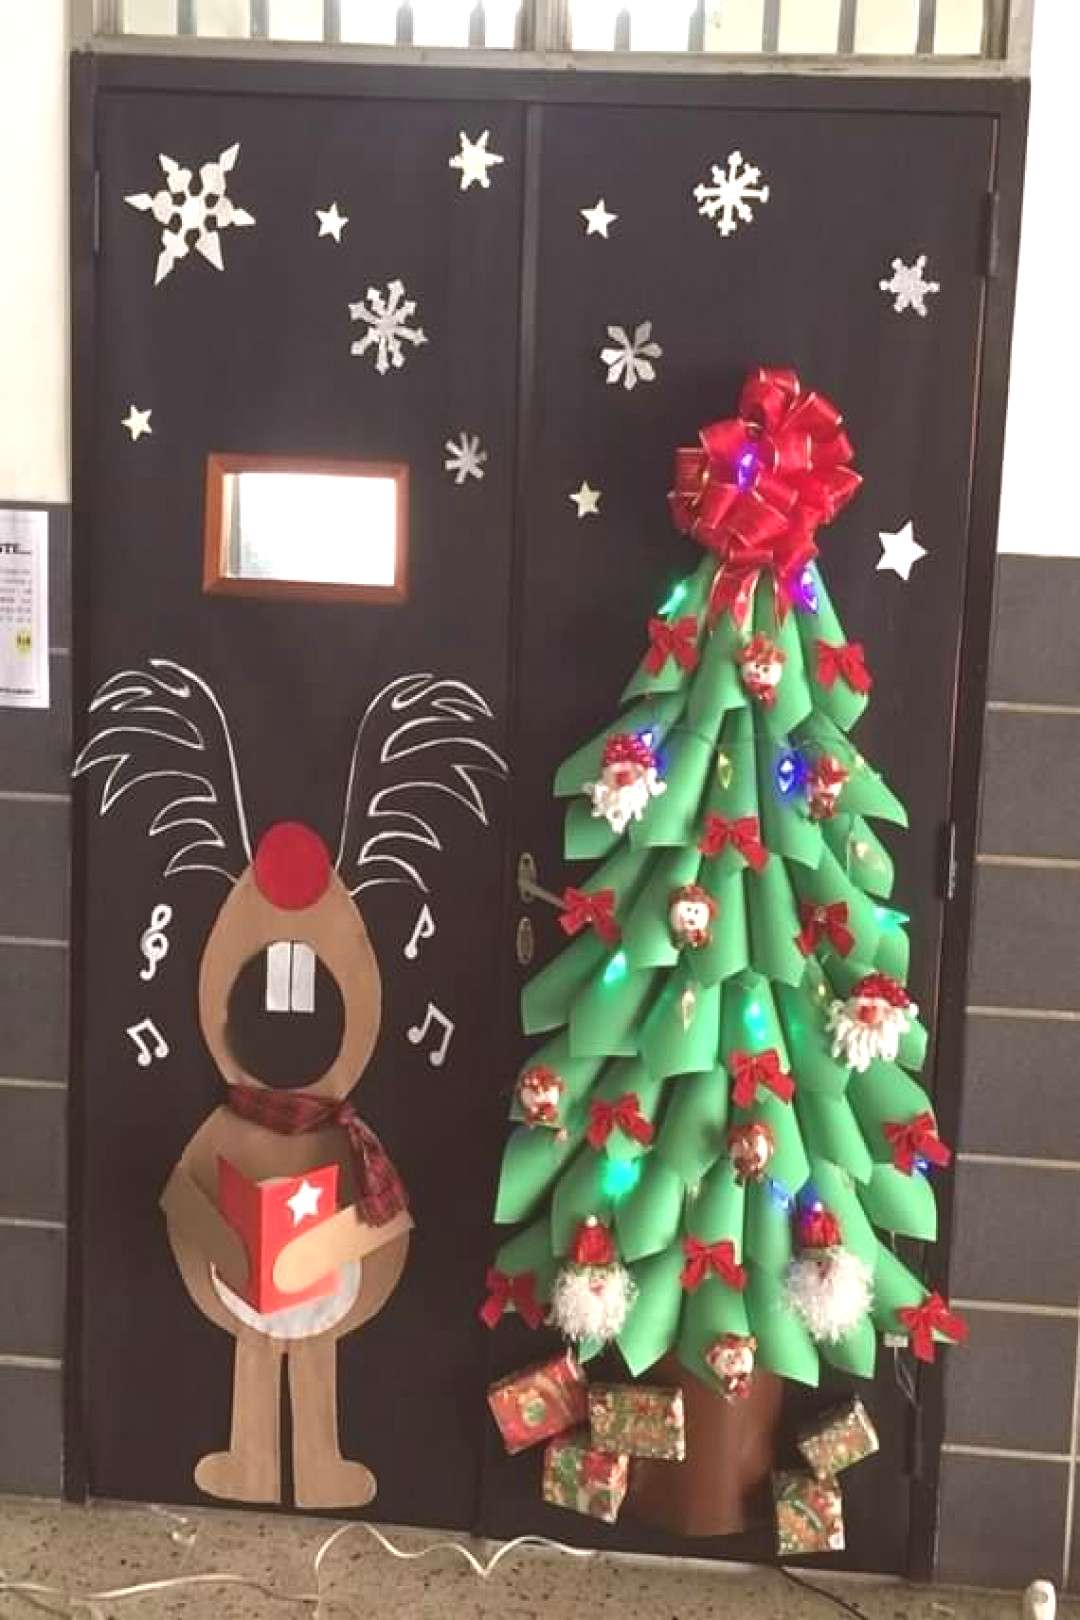 Christmas door decorating ideas part 2 ,Christmas door decorating ideas, Christmas, door decorating